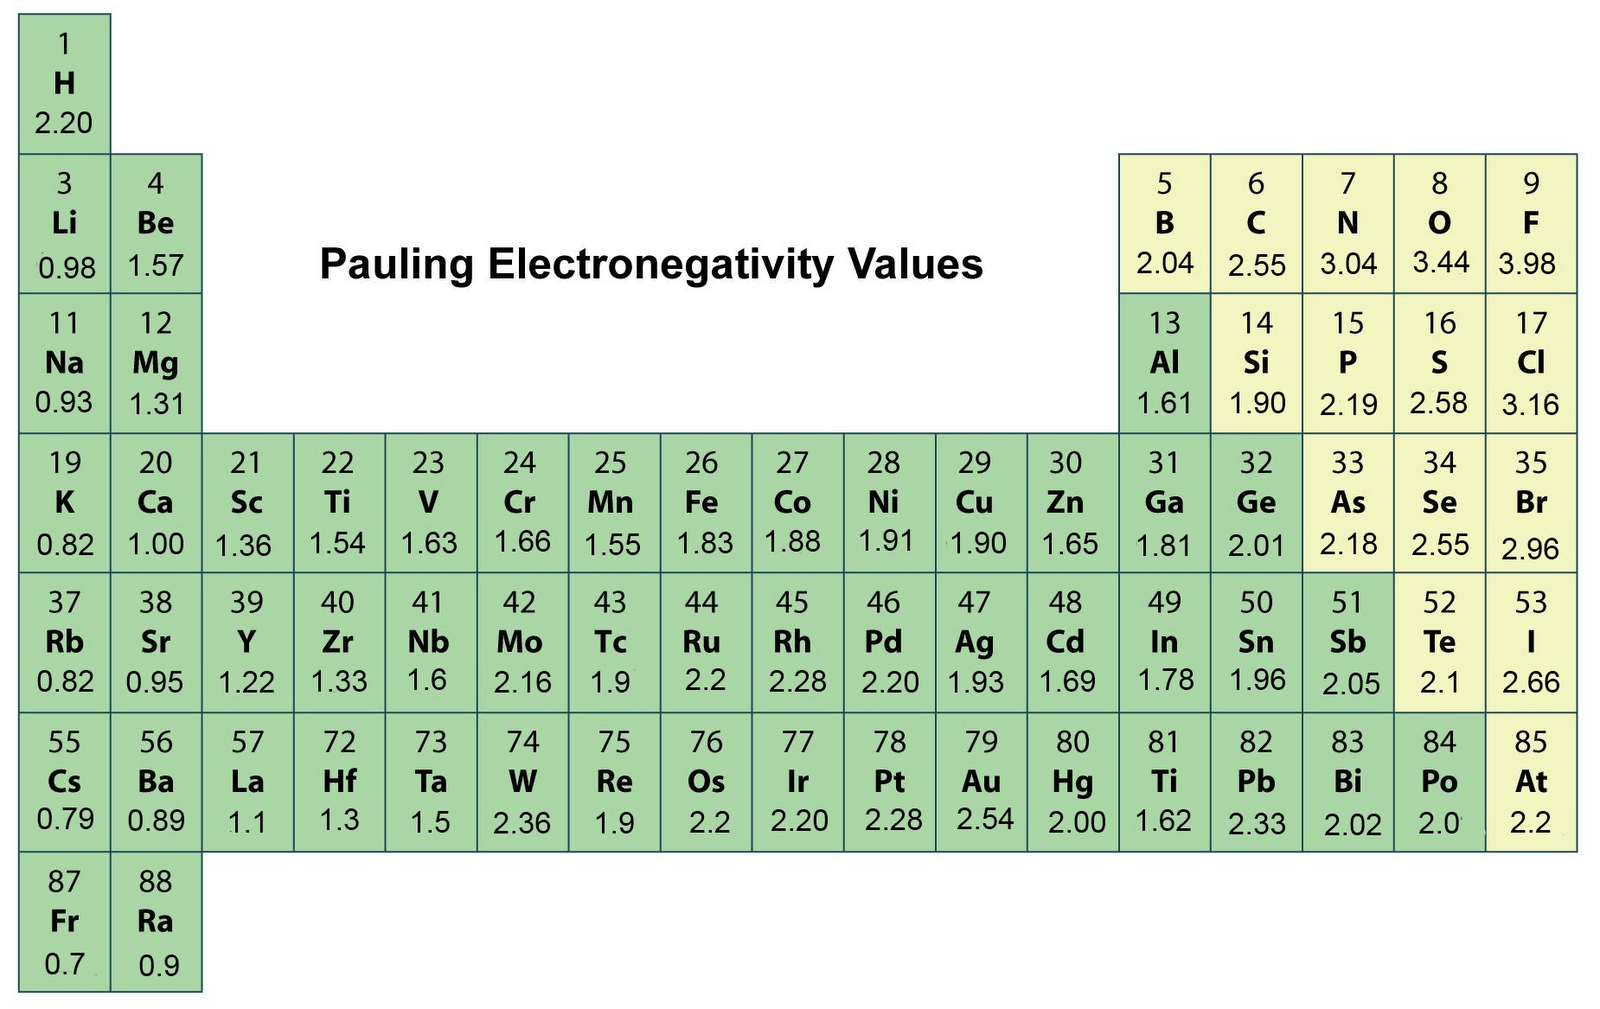 Periodic trends in electronegativity chemistry socratic 1bpspot gamestrikefo Choice Image